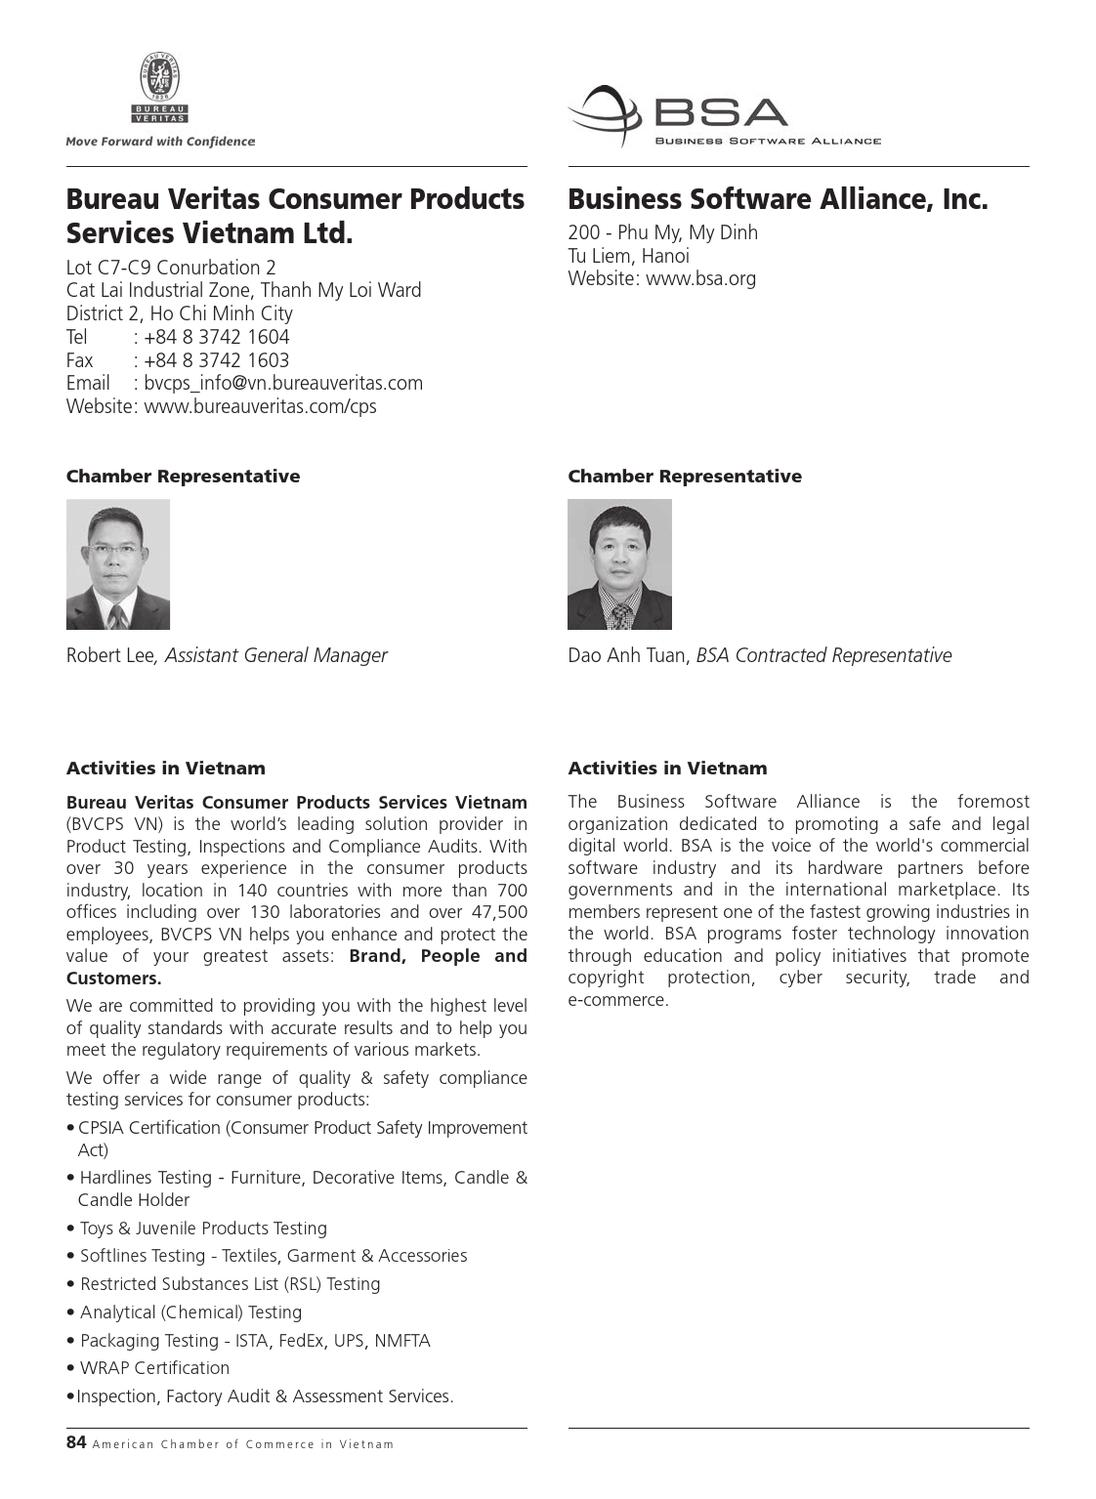 Amcham vietnam in hcmc membership directory 2012 by minh le page 86 issuu - Bureau veritas industrial services ...